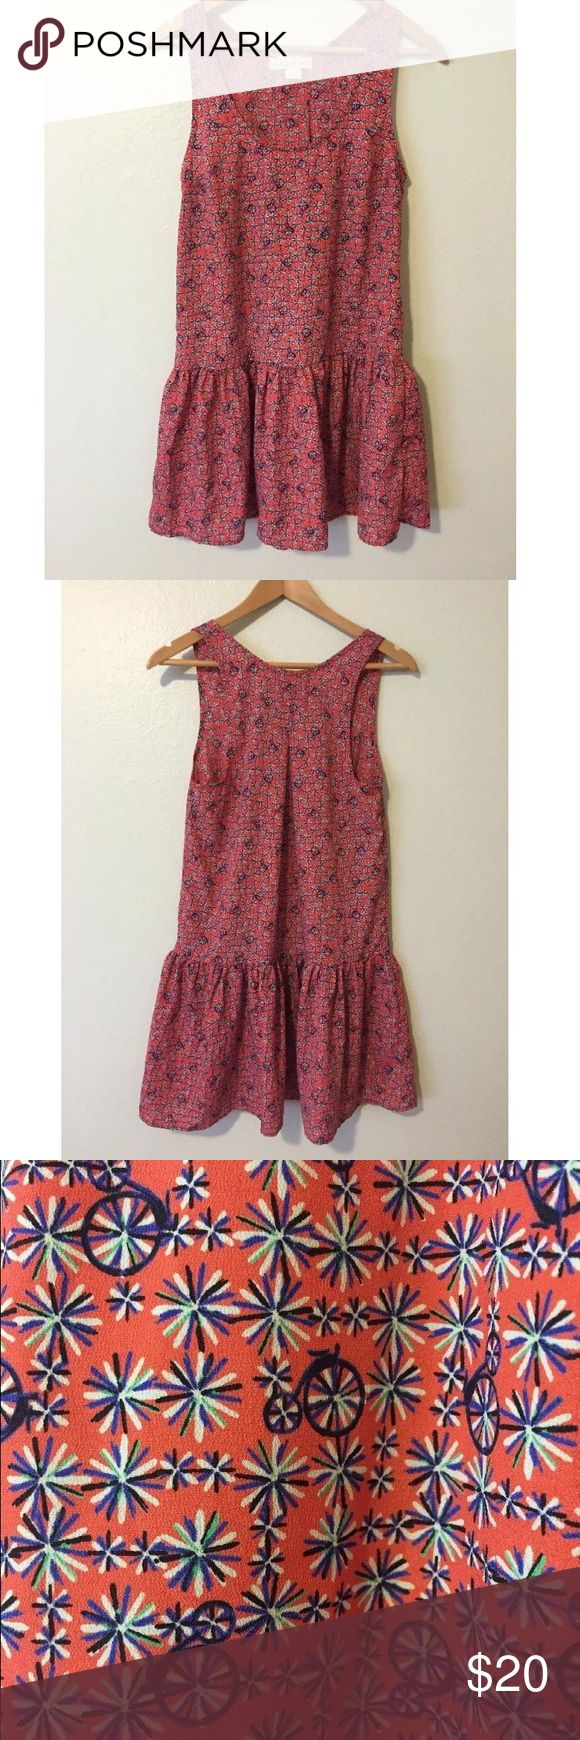 Urban Outfitters Staring At Stars Drop Waist Dress Darling sleeveless drop waist dress with red bicycle print from Urban Outfitters brand Staring at Stars. Size small. 100% polyester. Made in the USA. In gently worn condition. Only light signs of previous wash and wear, no notable flaws. Urban Outfitters Dresses Mini